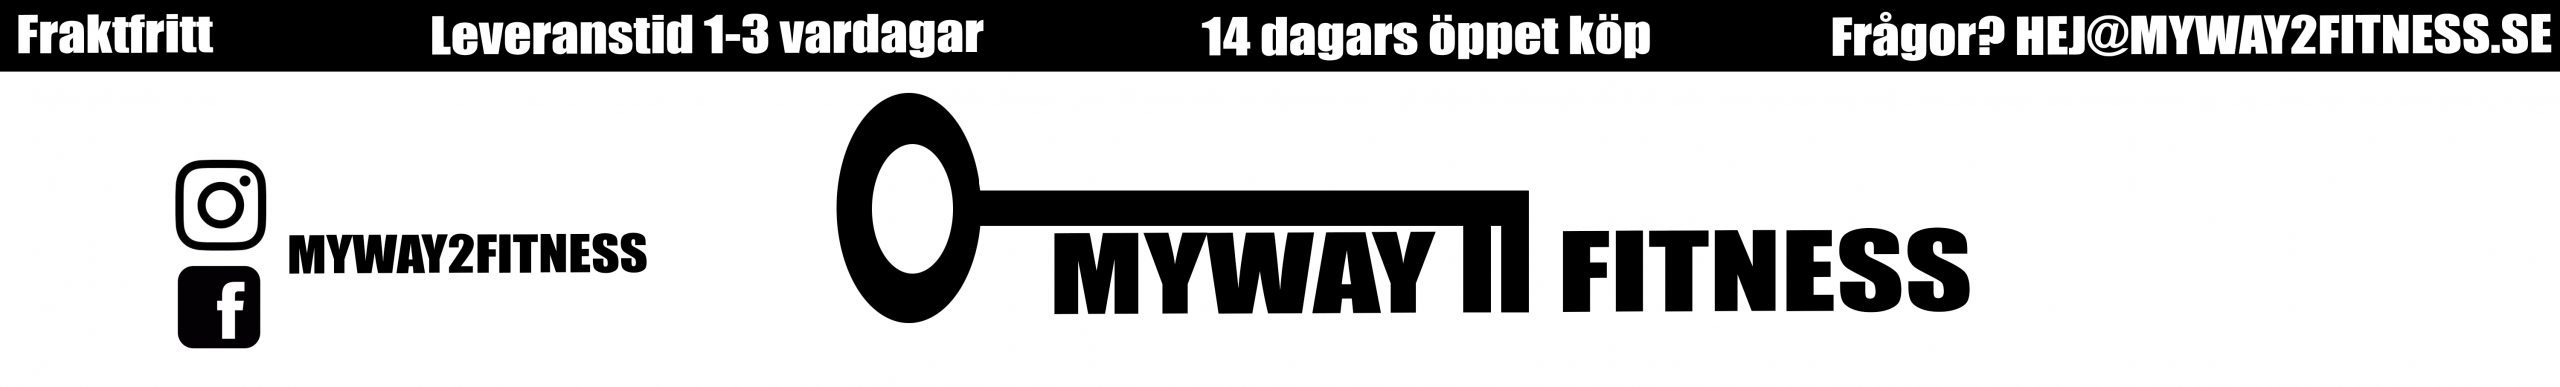 Myway2fitness